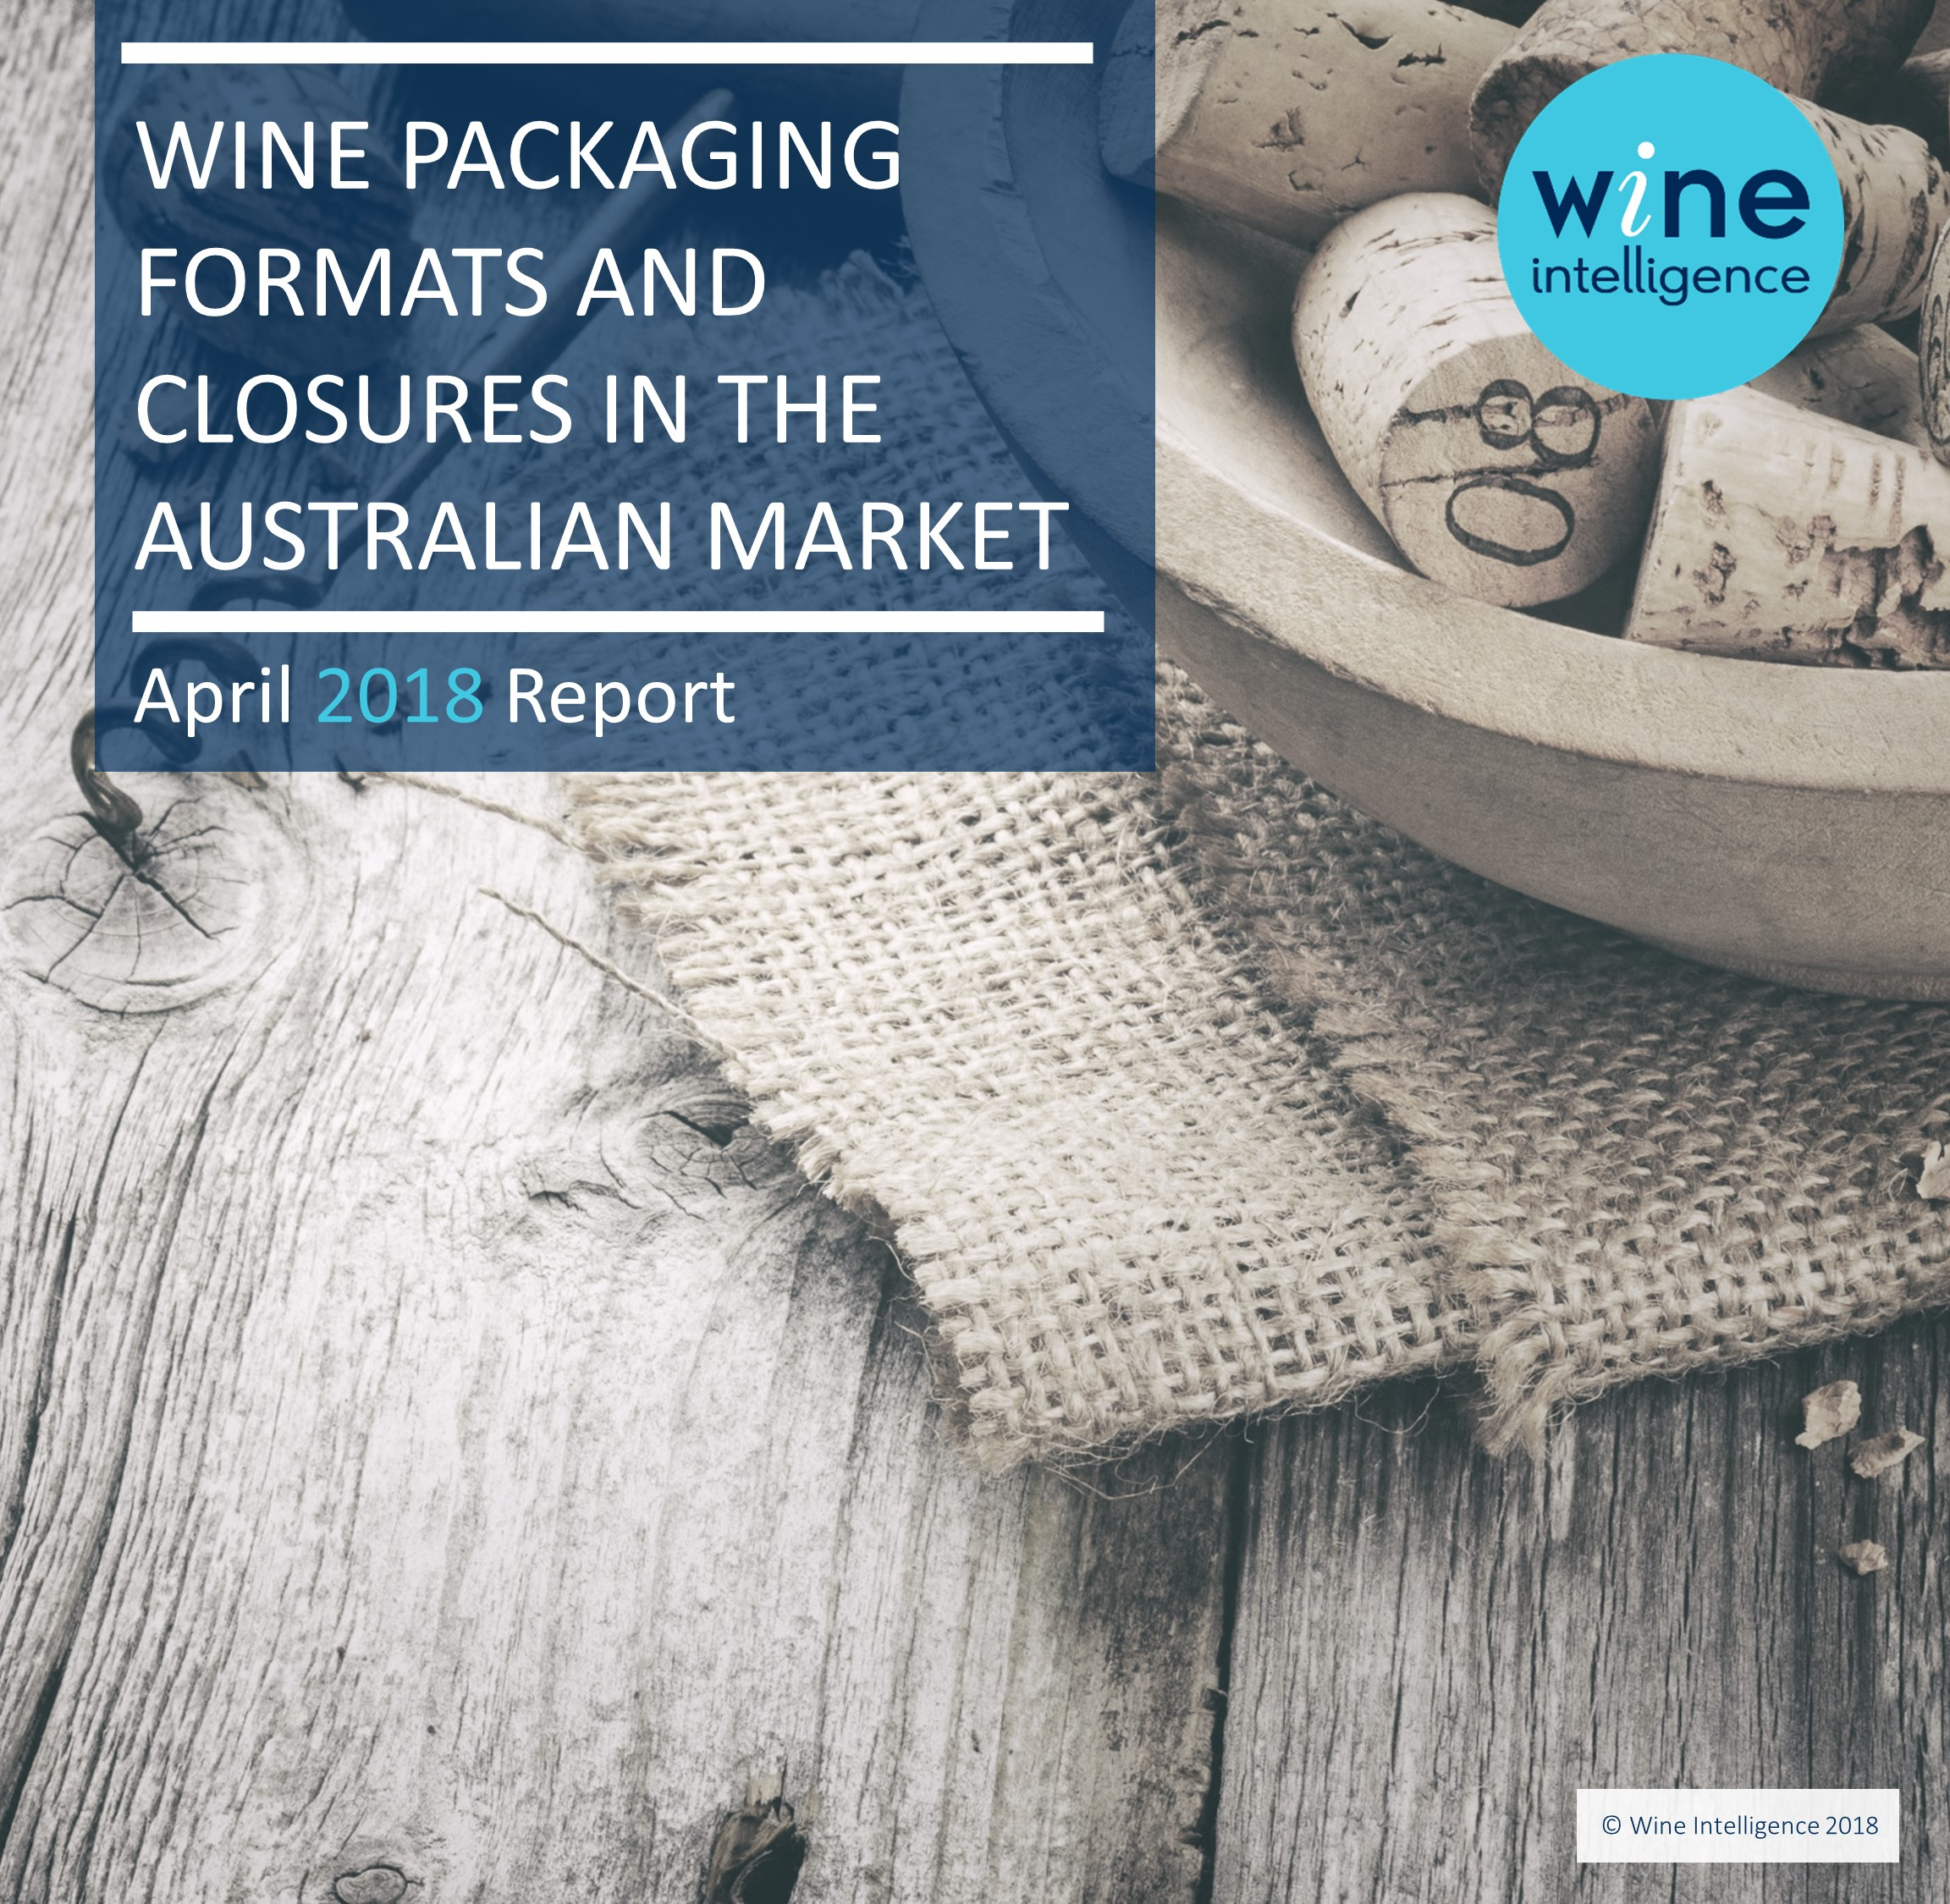 Australia Packaing Formats and Closures in the Australian Market 2018 - Press release: China's imported wine market